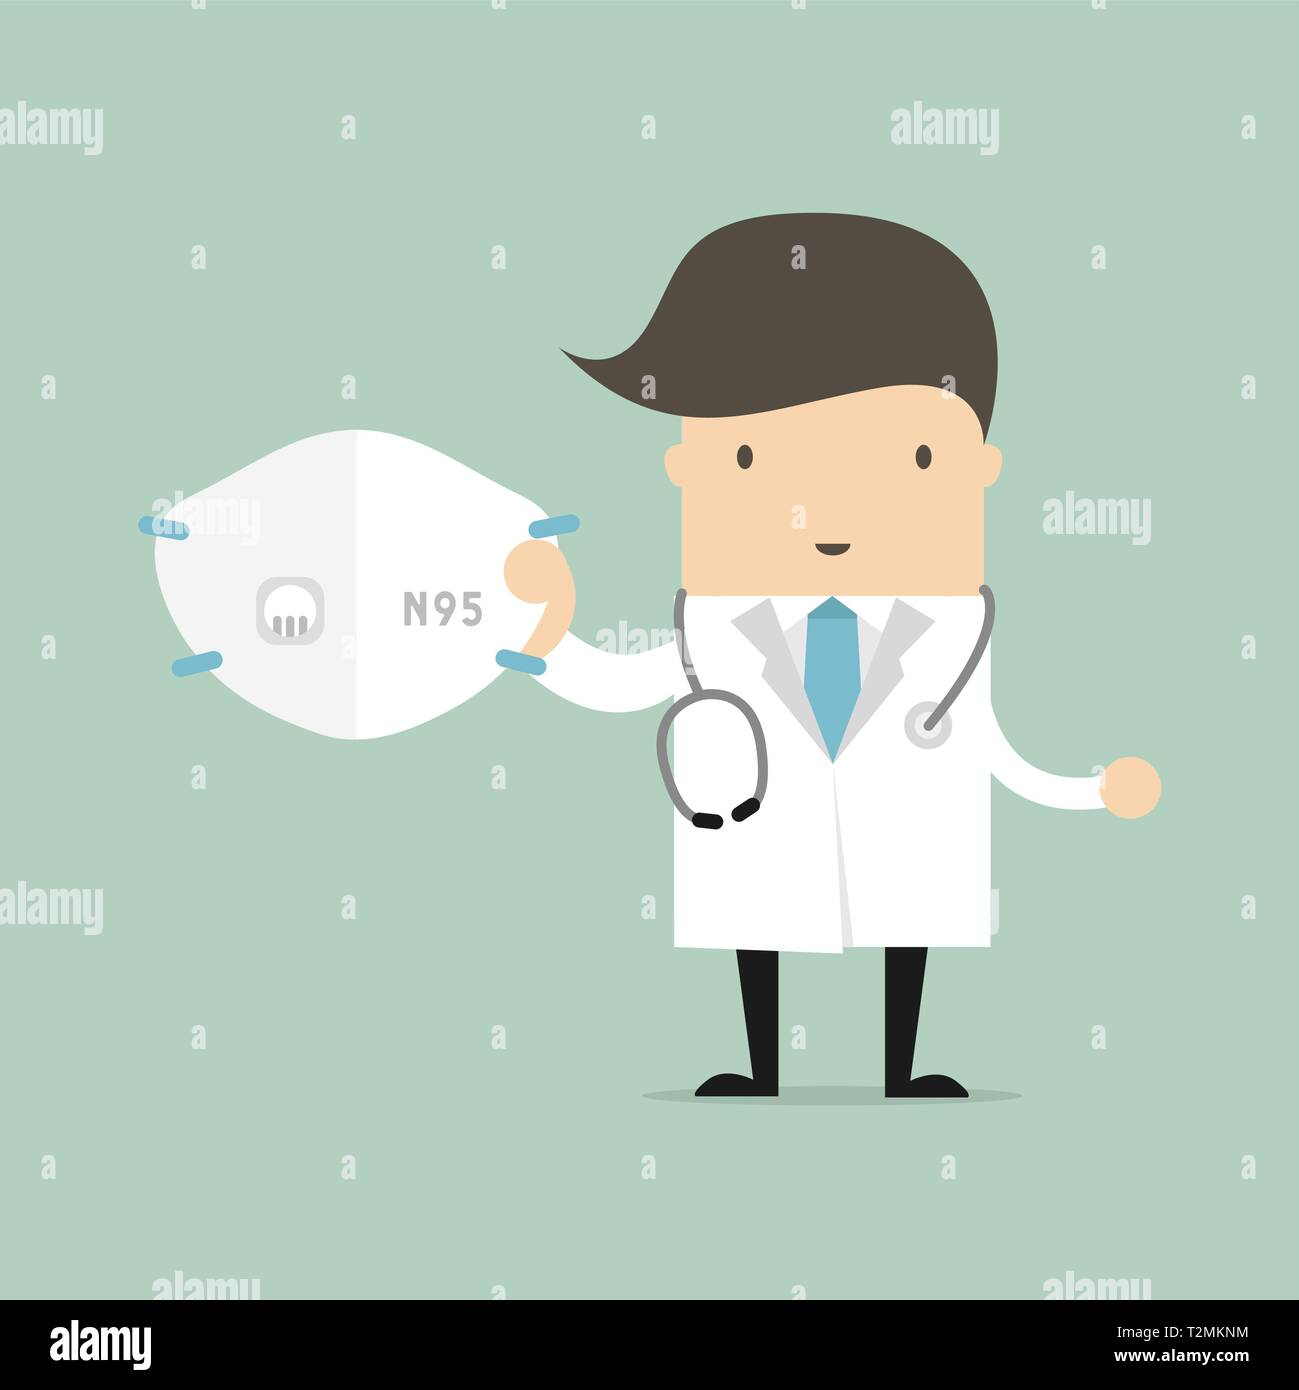 Doctor with N95 mask. Mask for protect outdoor air pollution. - Stock Image